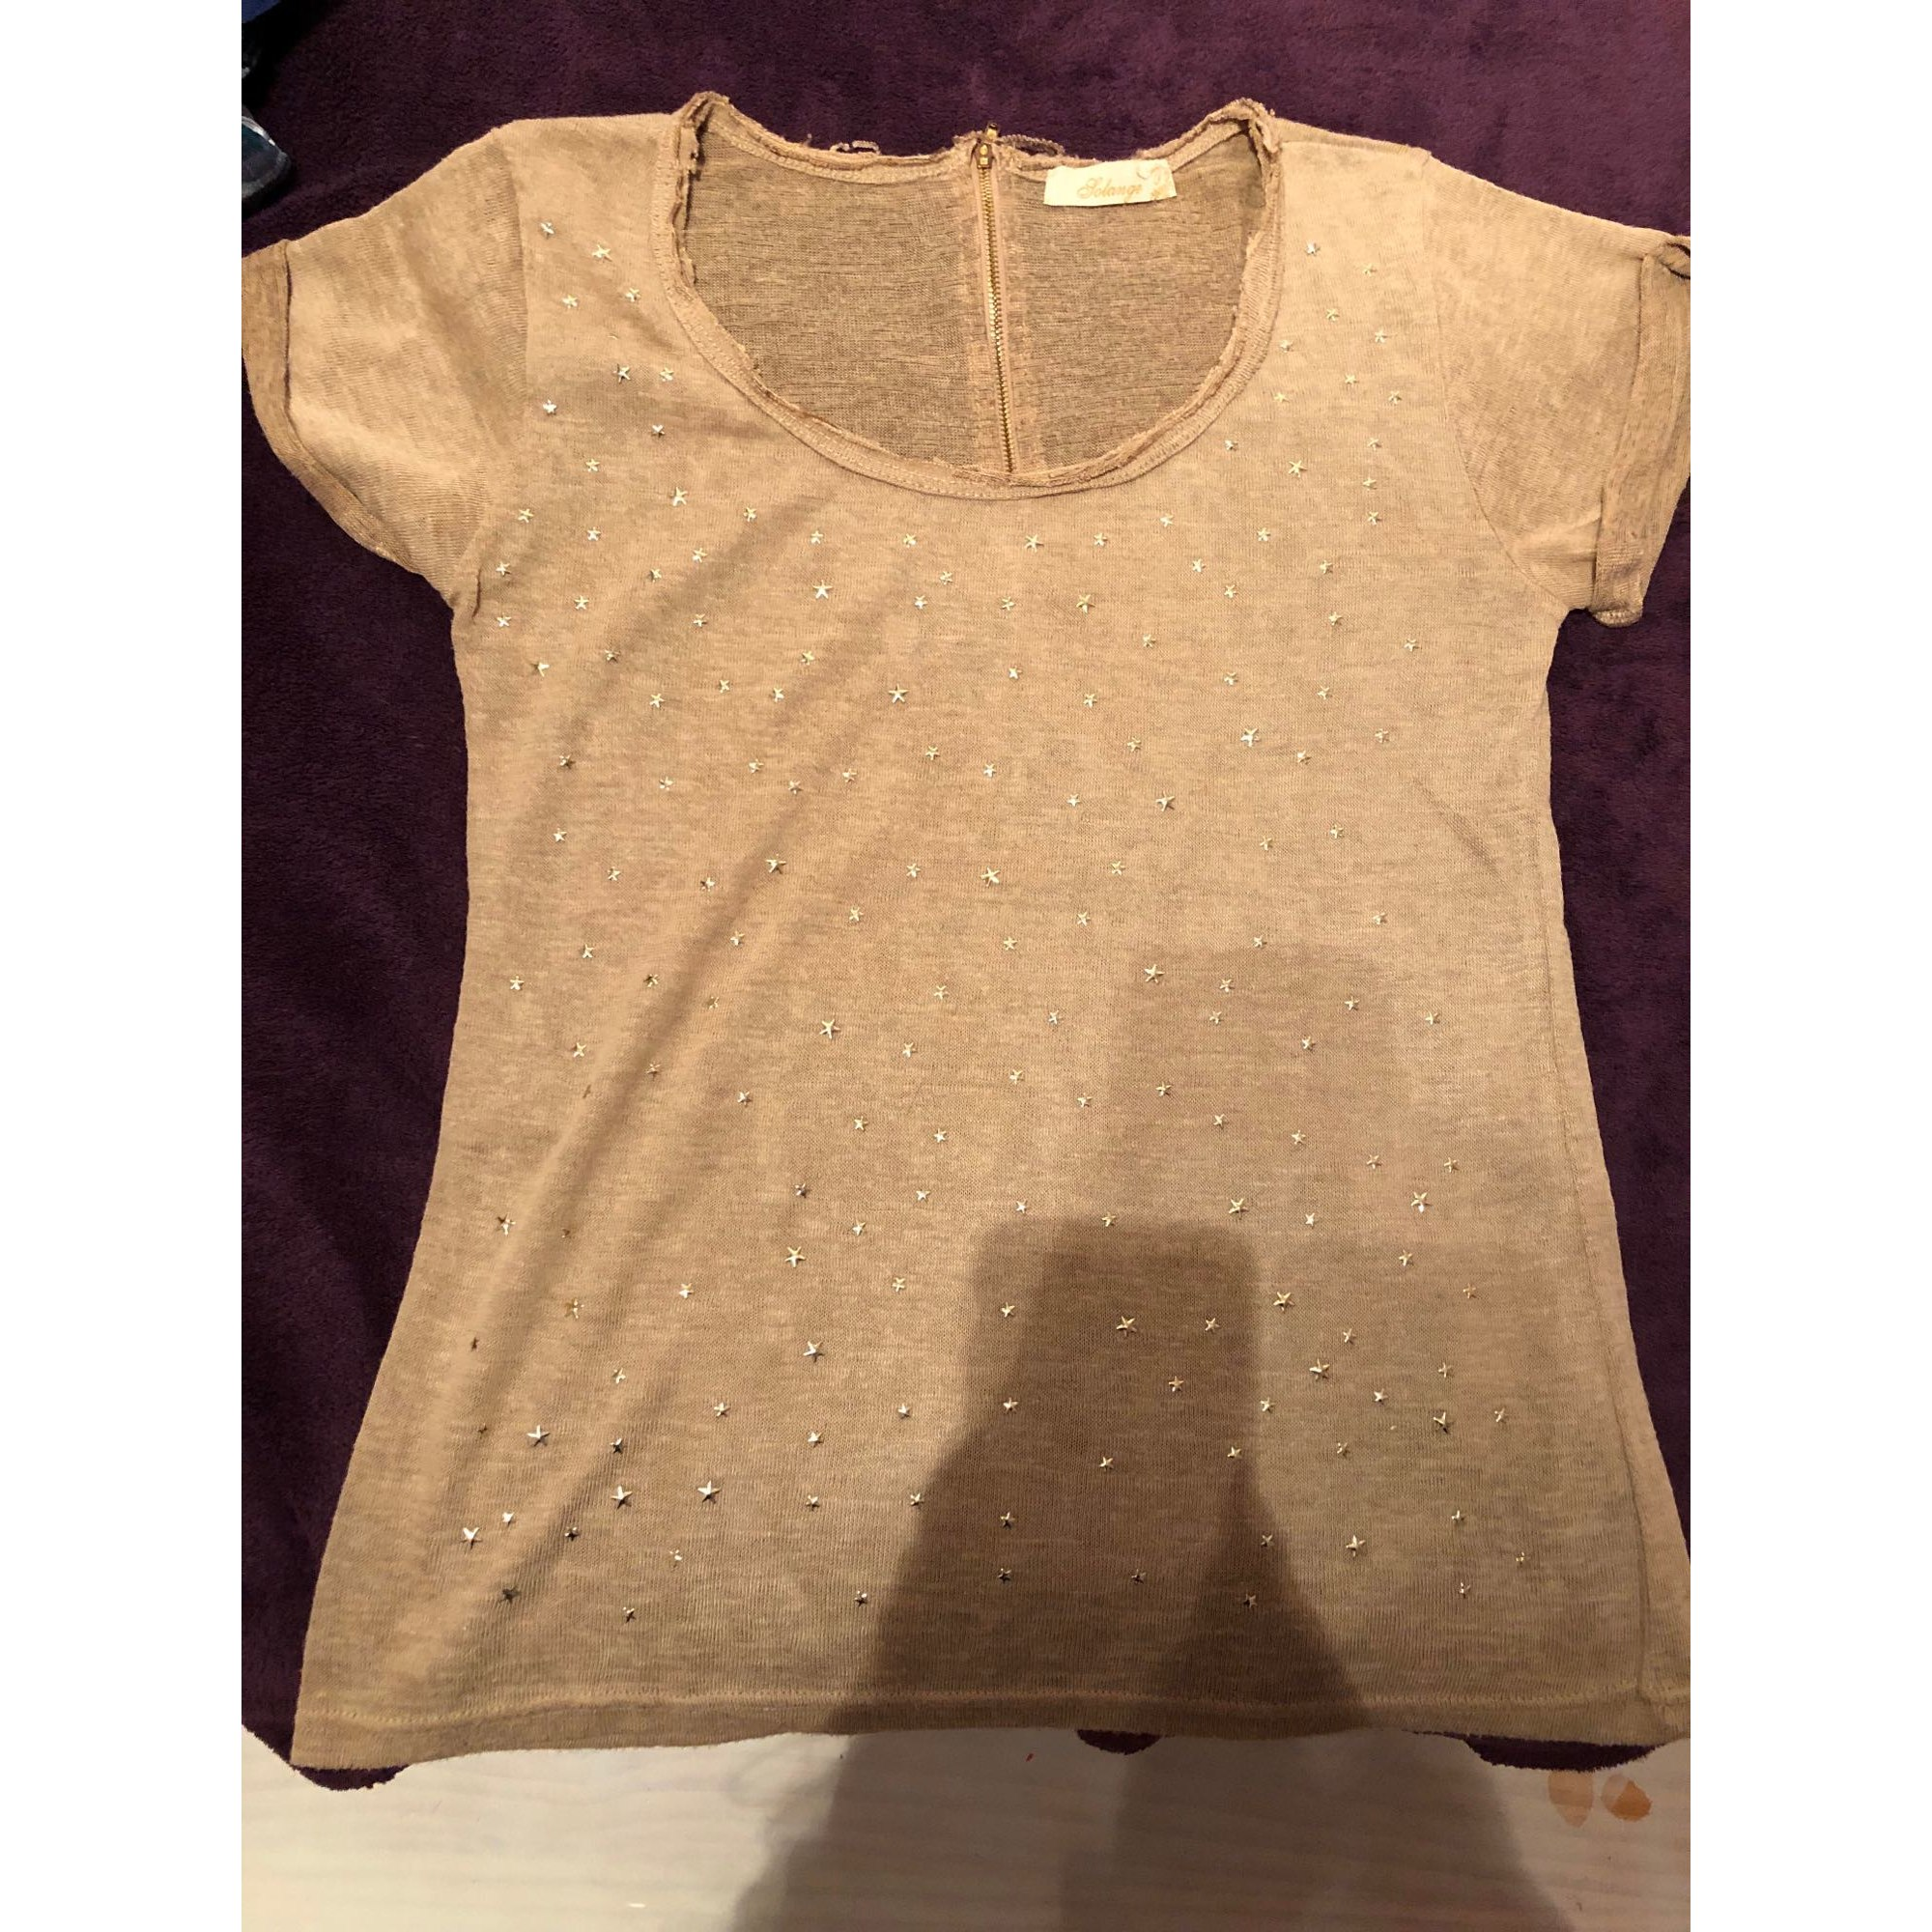 Top, tee-shirt MARQUE INCONNUE Beige, camel